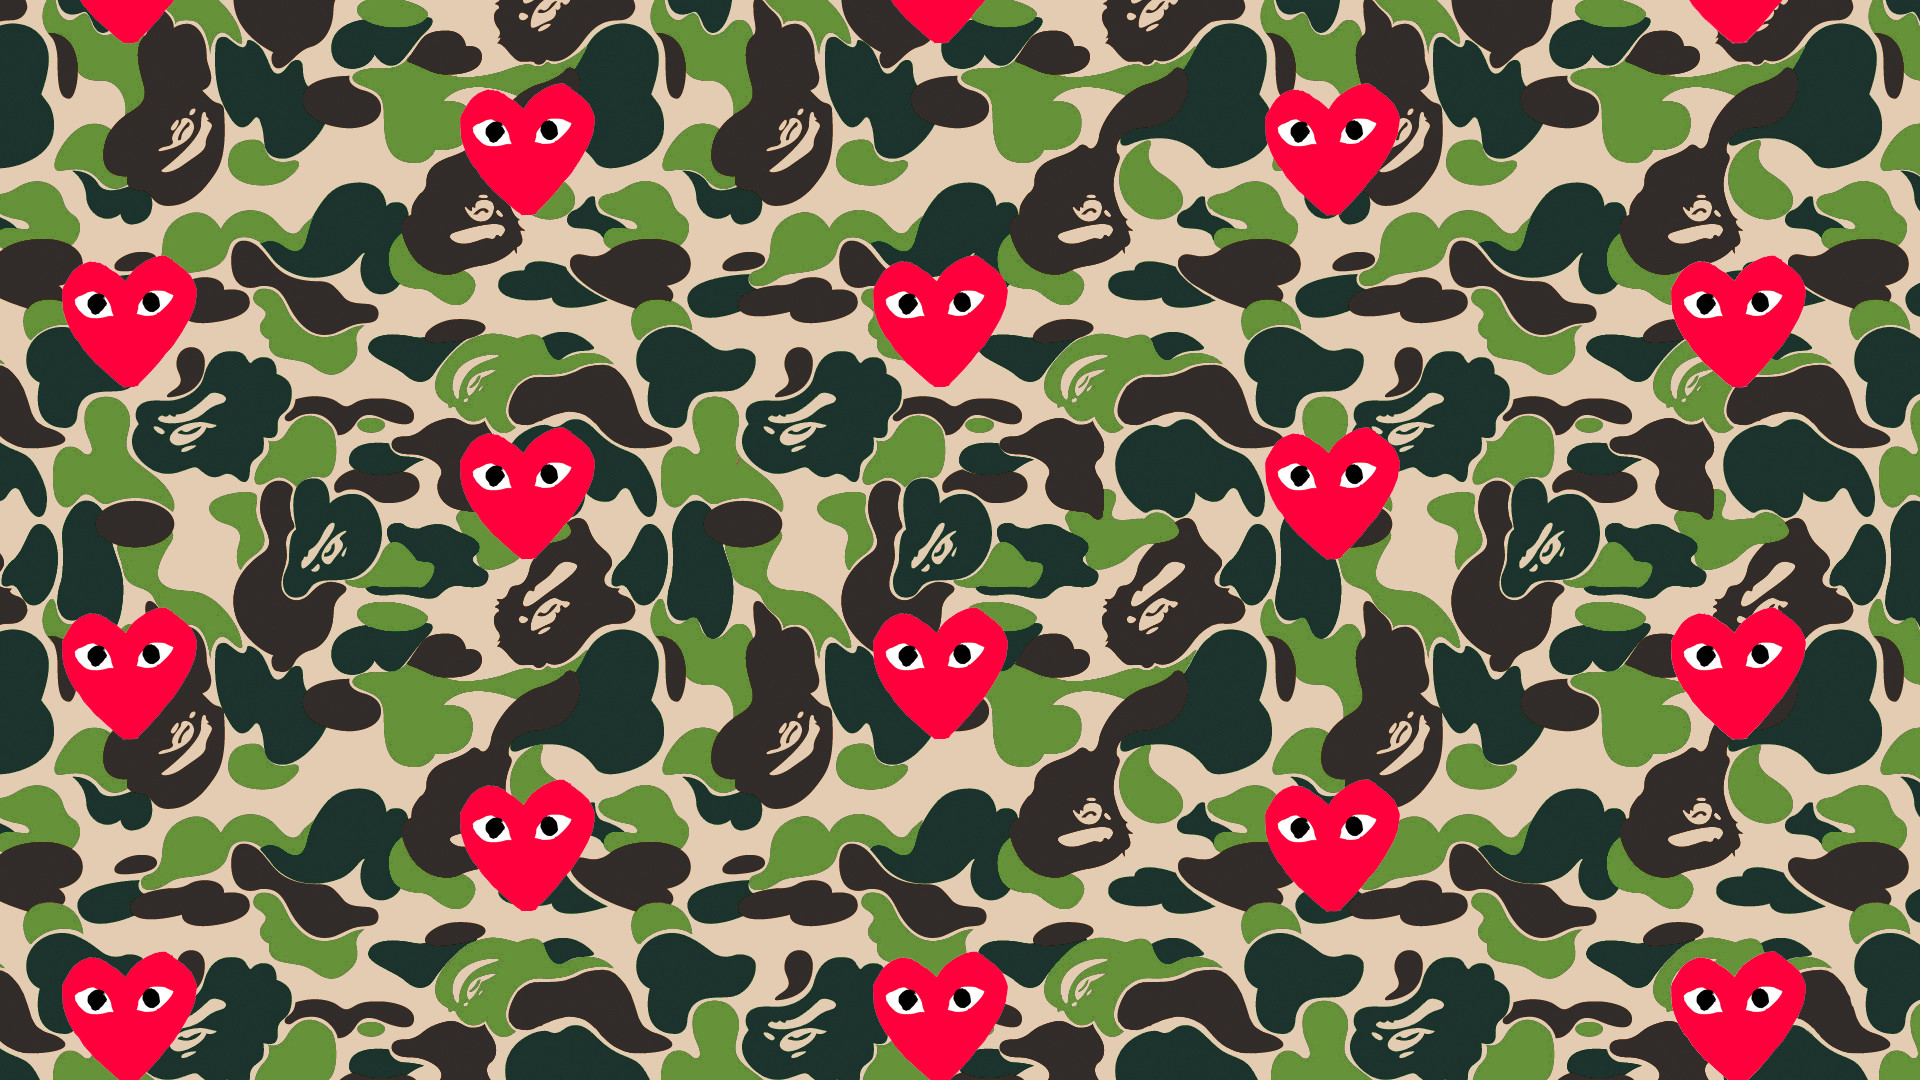 Res: 1920x1080, [OC] Made a Bape x Comme Des Garcons Wallpaper for you guys ...